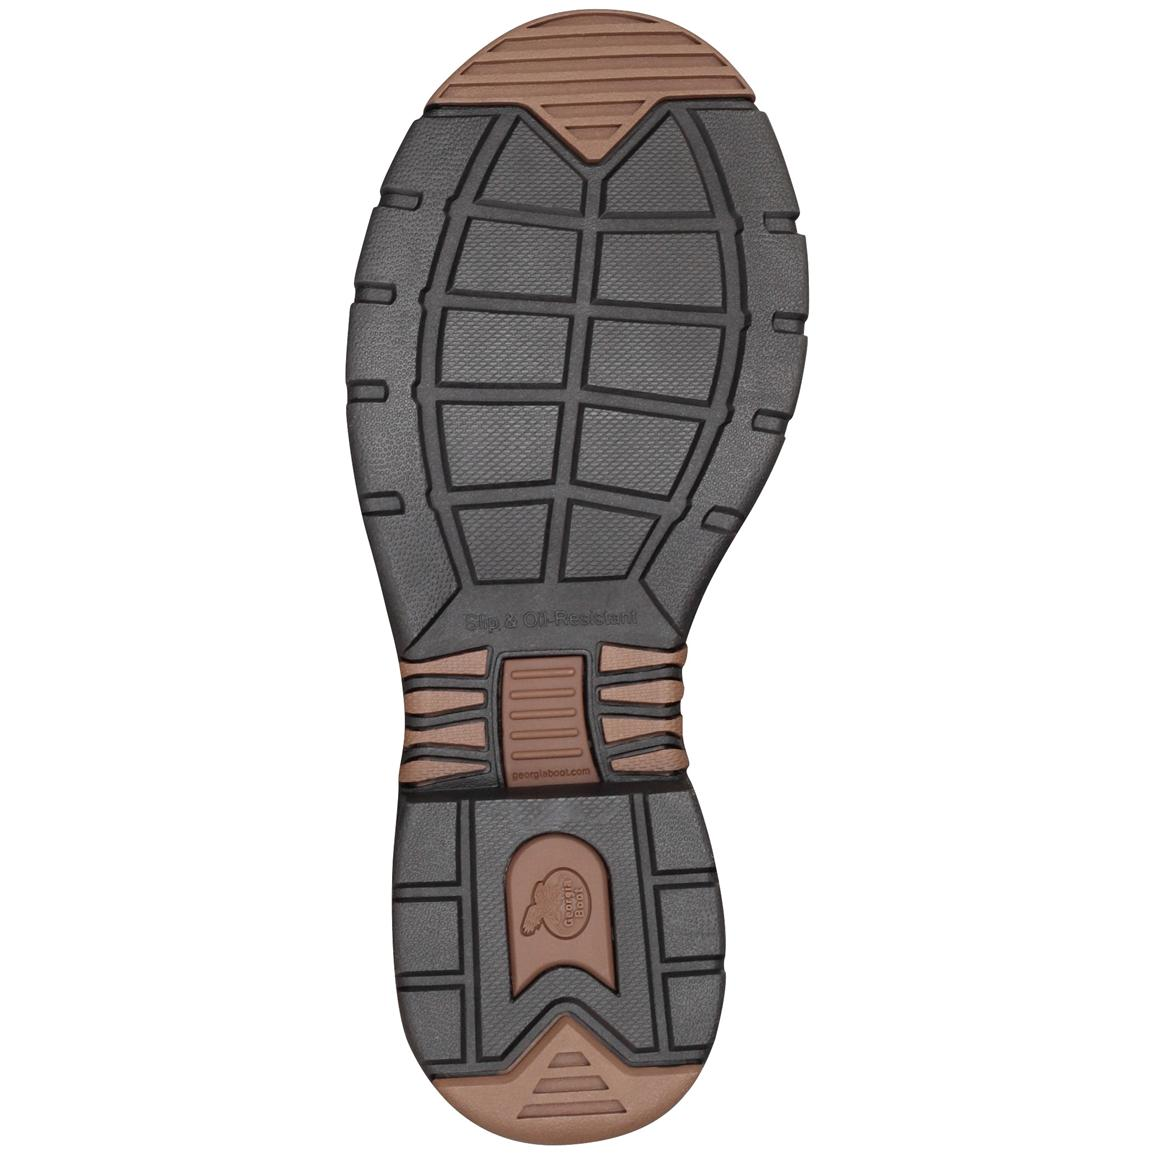 Rubber outsole for reliable traction